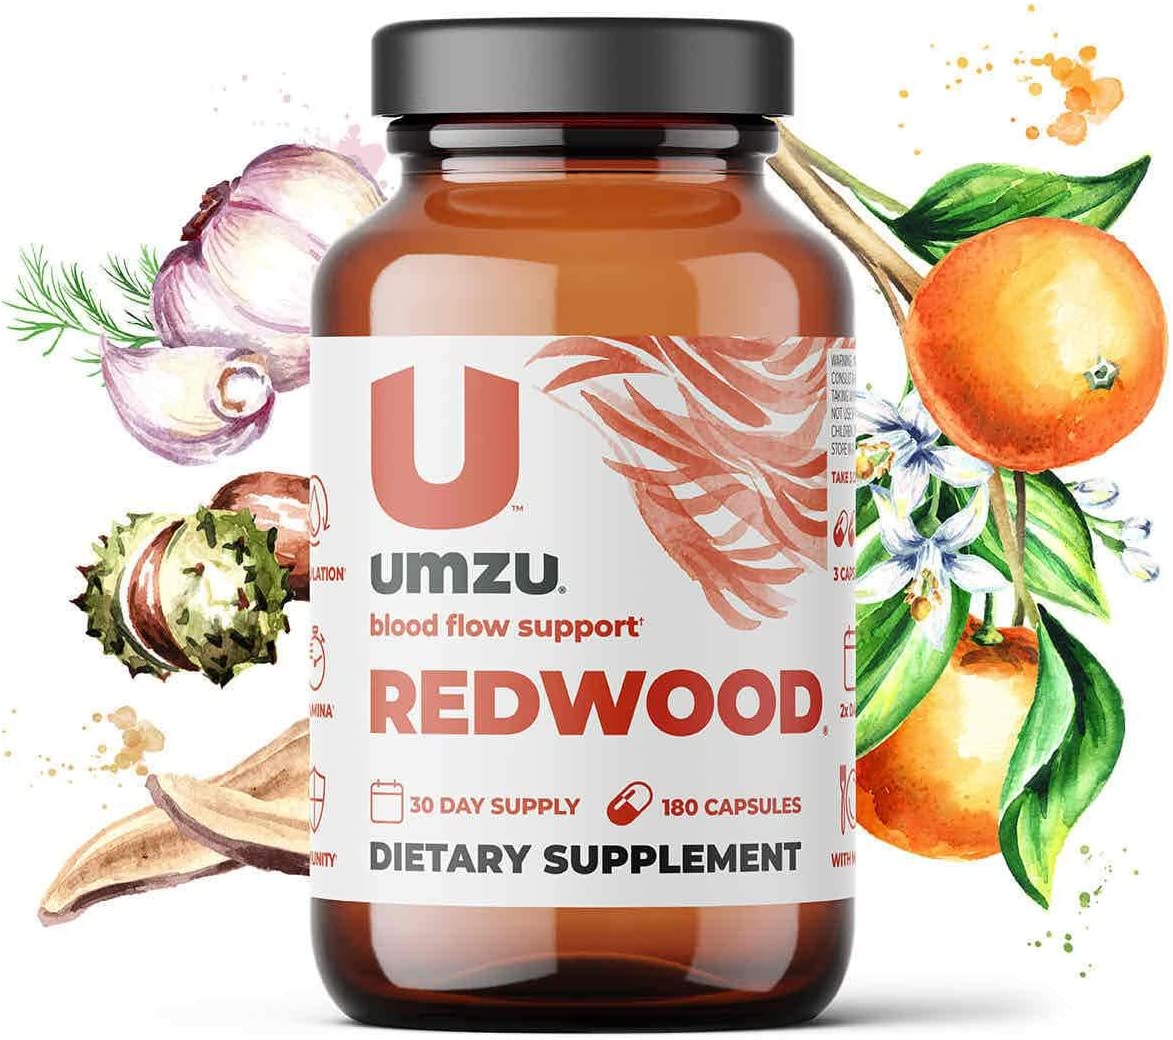 redwood supplement, redwood supplement review, redwood supplement reviews